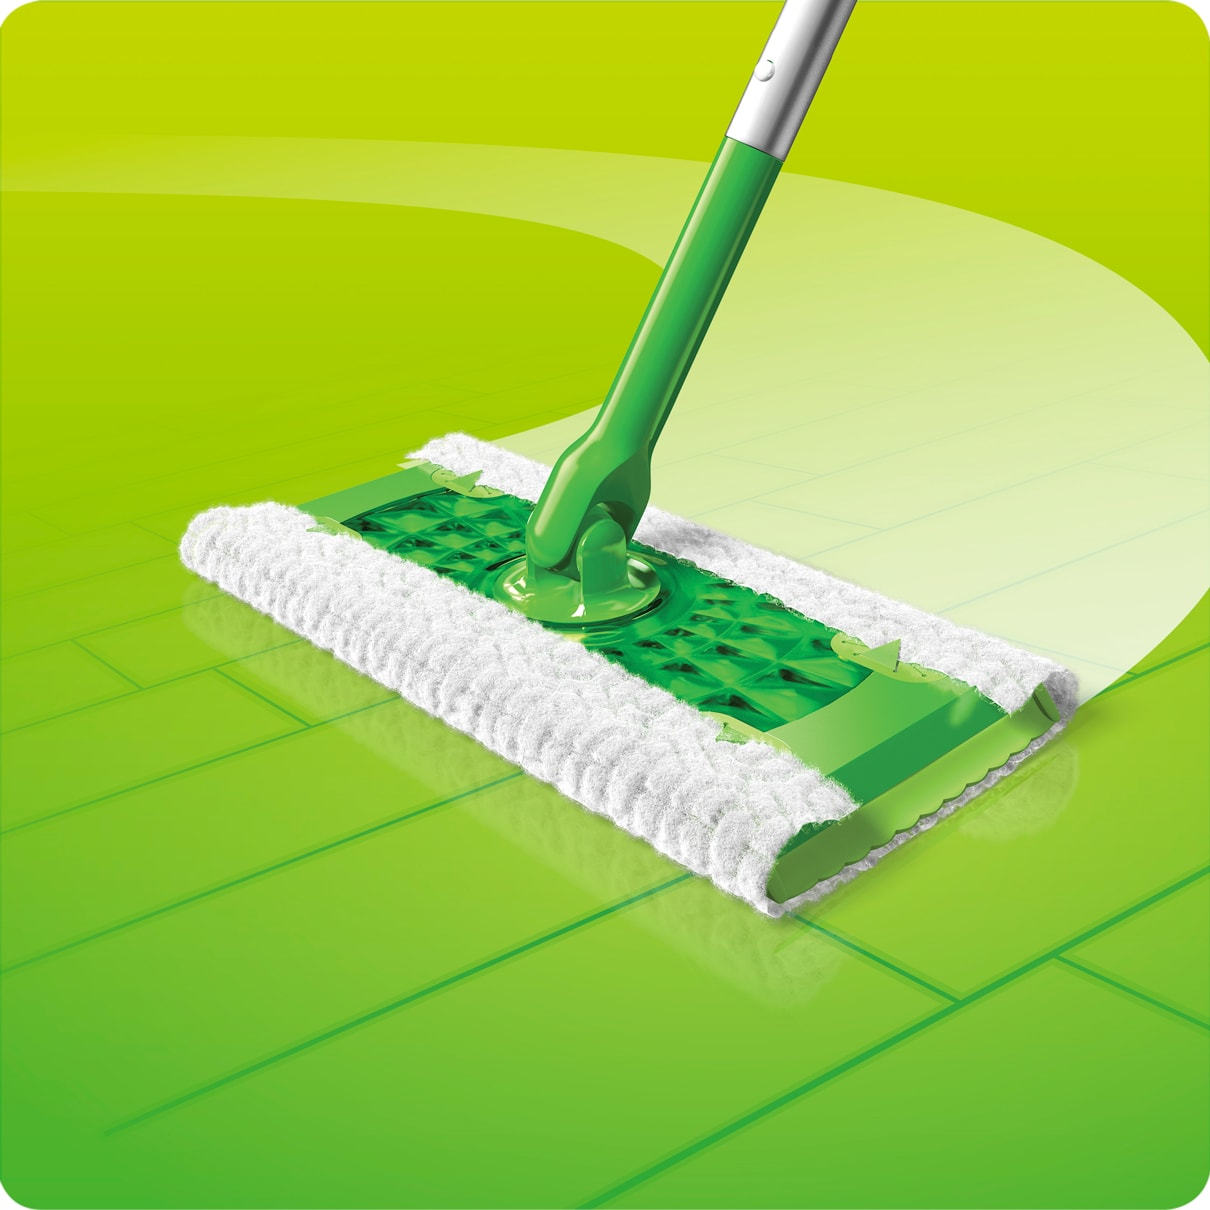 Swiffer Sweeper Unscented